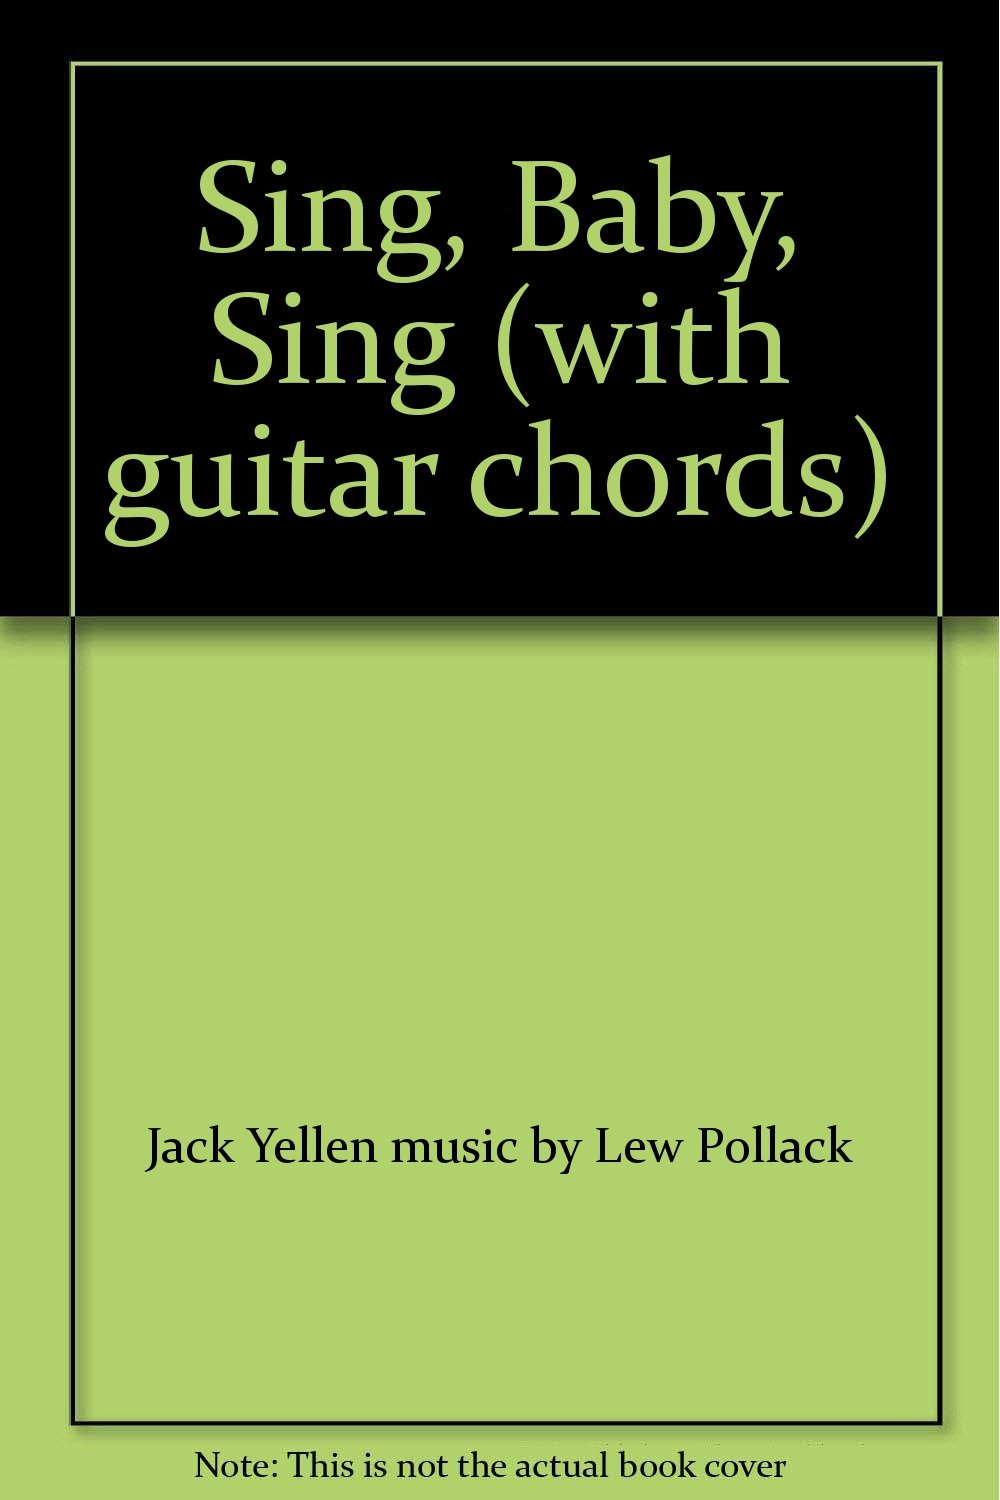 Sing Baby Sing With Guitar Chords Jack Yellen Music By Lew